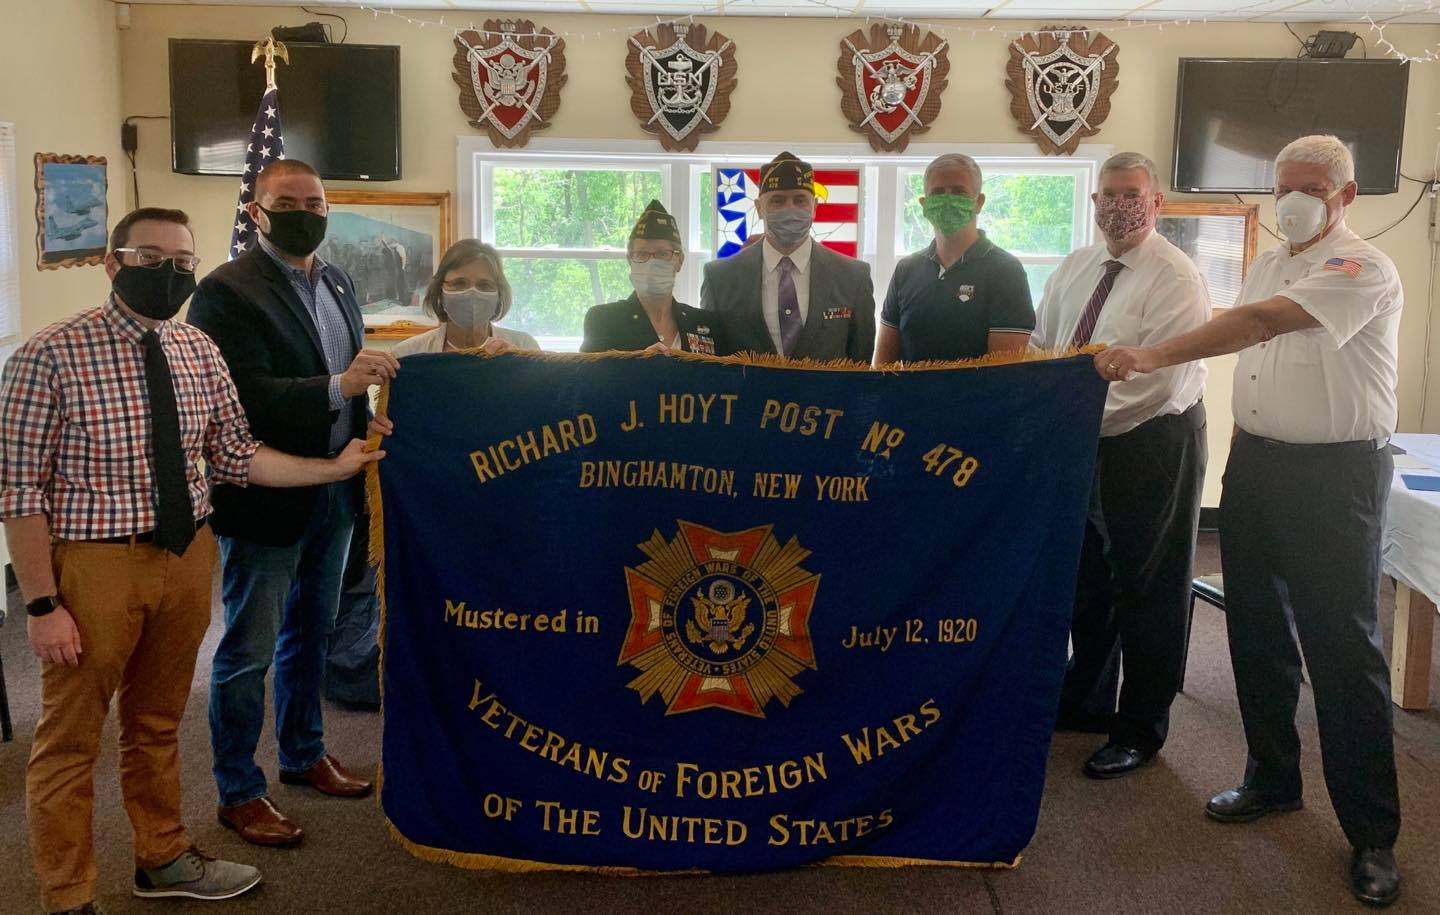 July 12, 2020 – Assemblywoman Lupardo helps celebrate the 100th anniversary of VFW Post 478 in Binghamton.